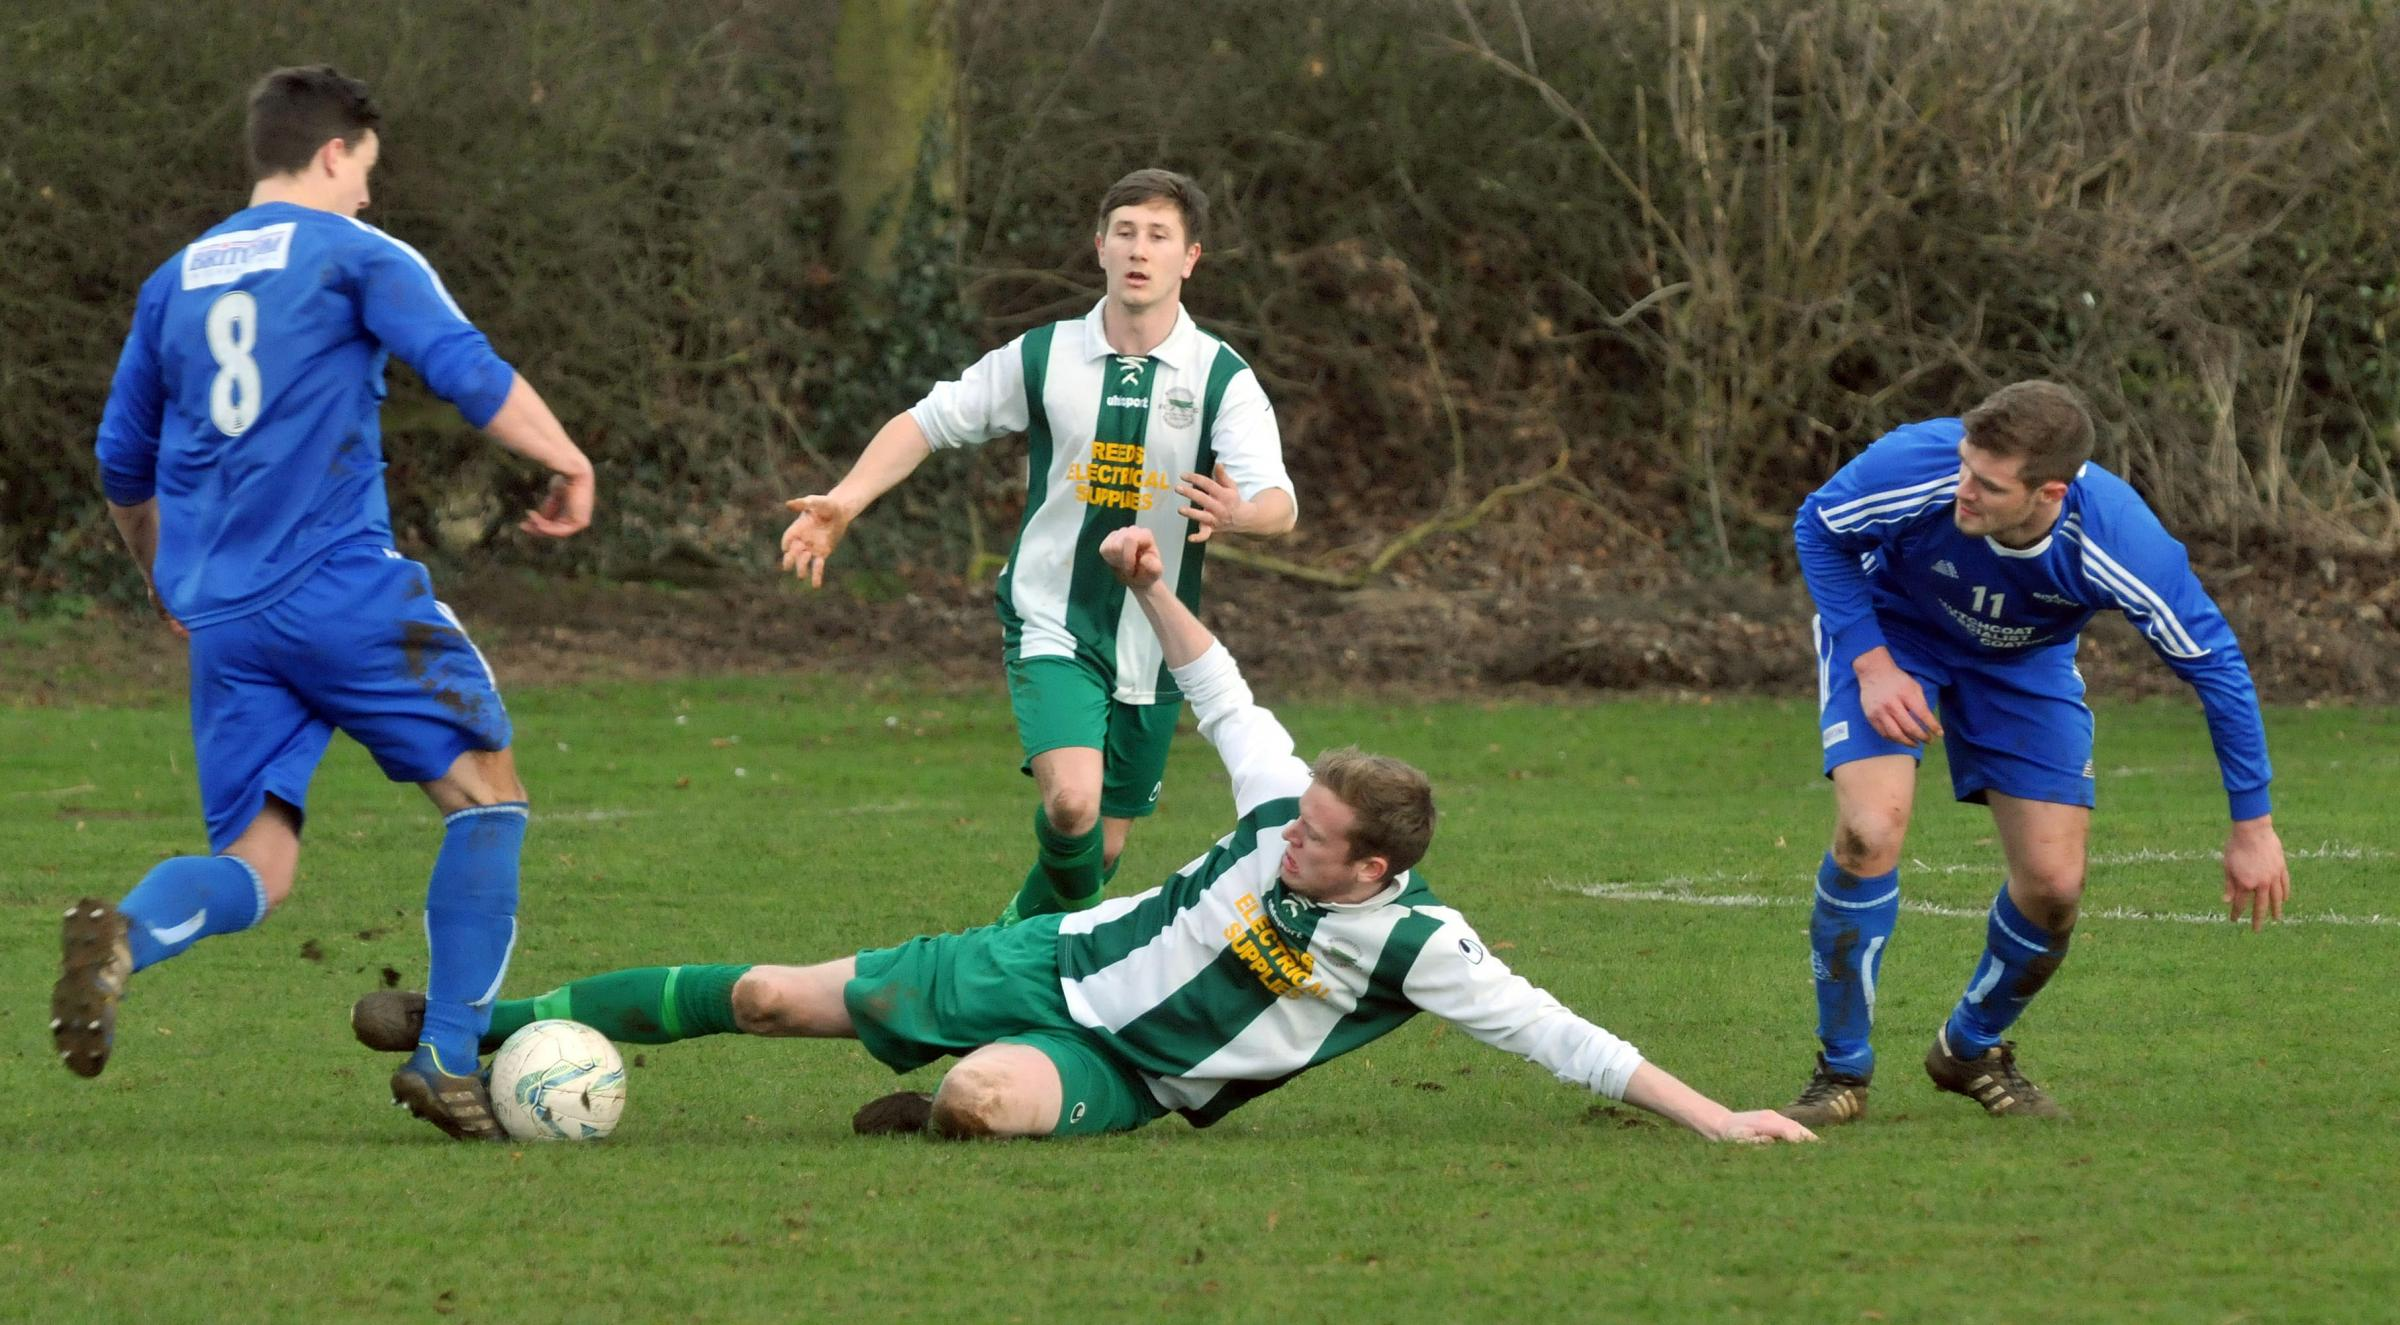 Chris Rhodes (number eight), who scored twice as Ryedale Sports Club ended their relegation campaign on a winning note